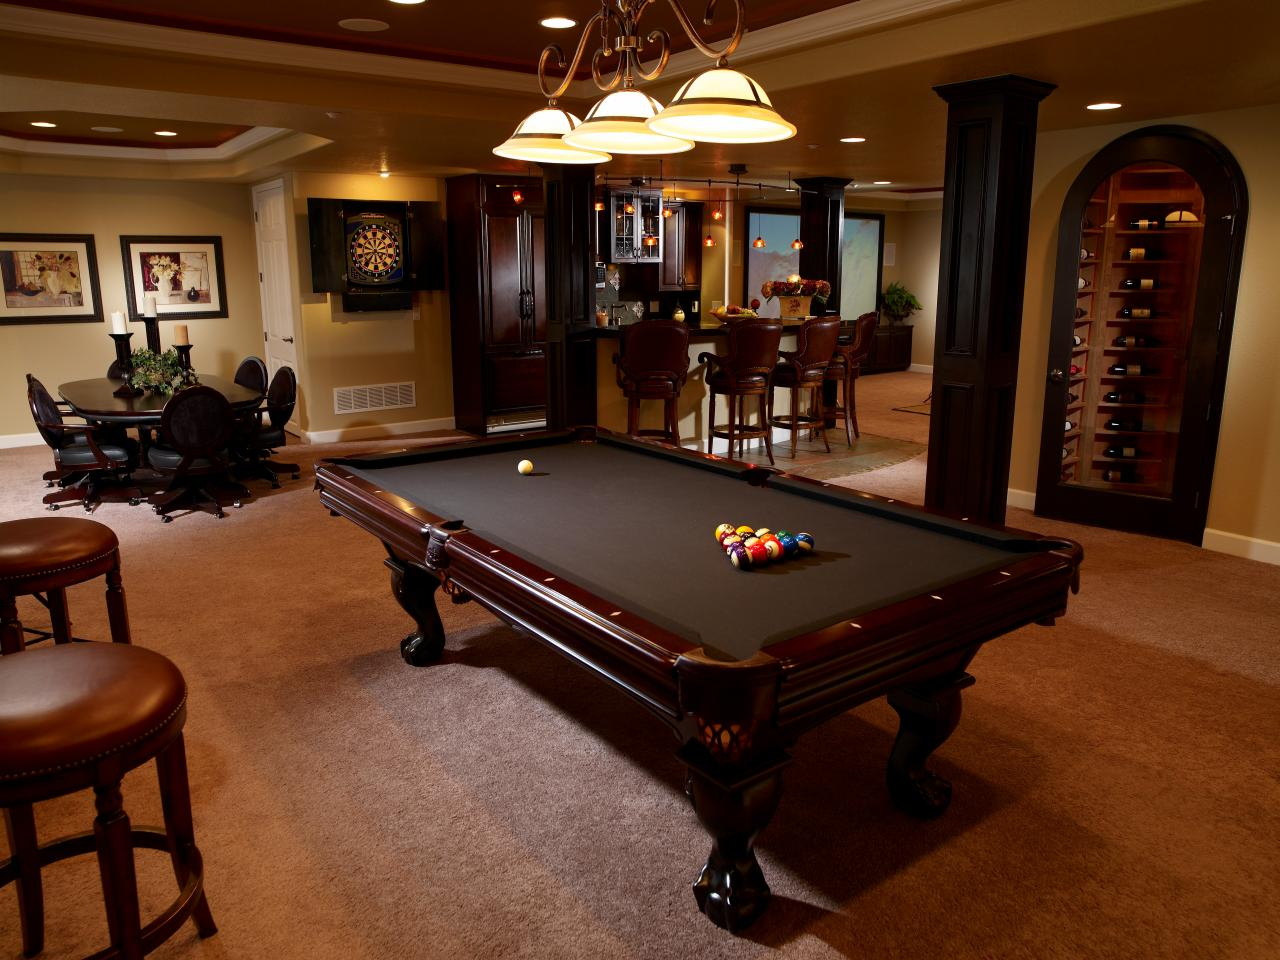 Top six basement spaces hgtv - Basements ideas ...